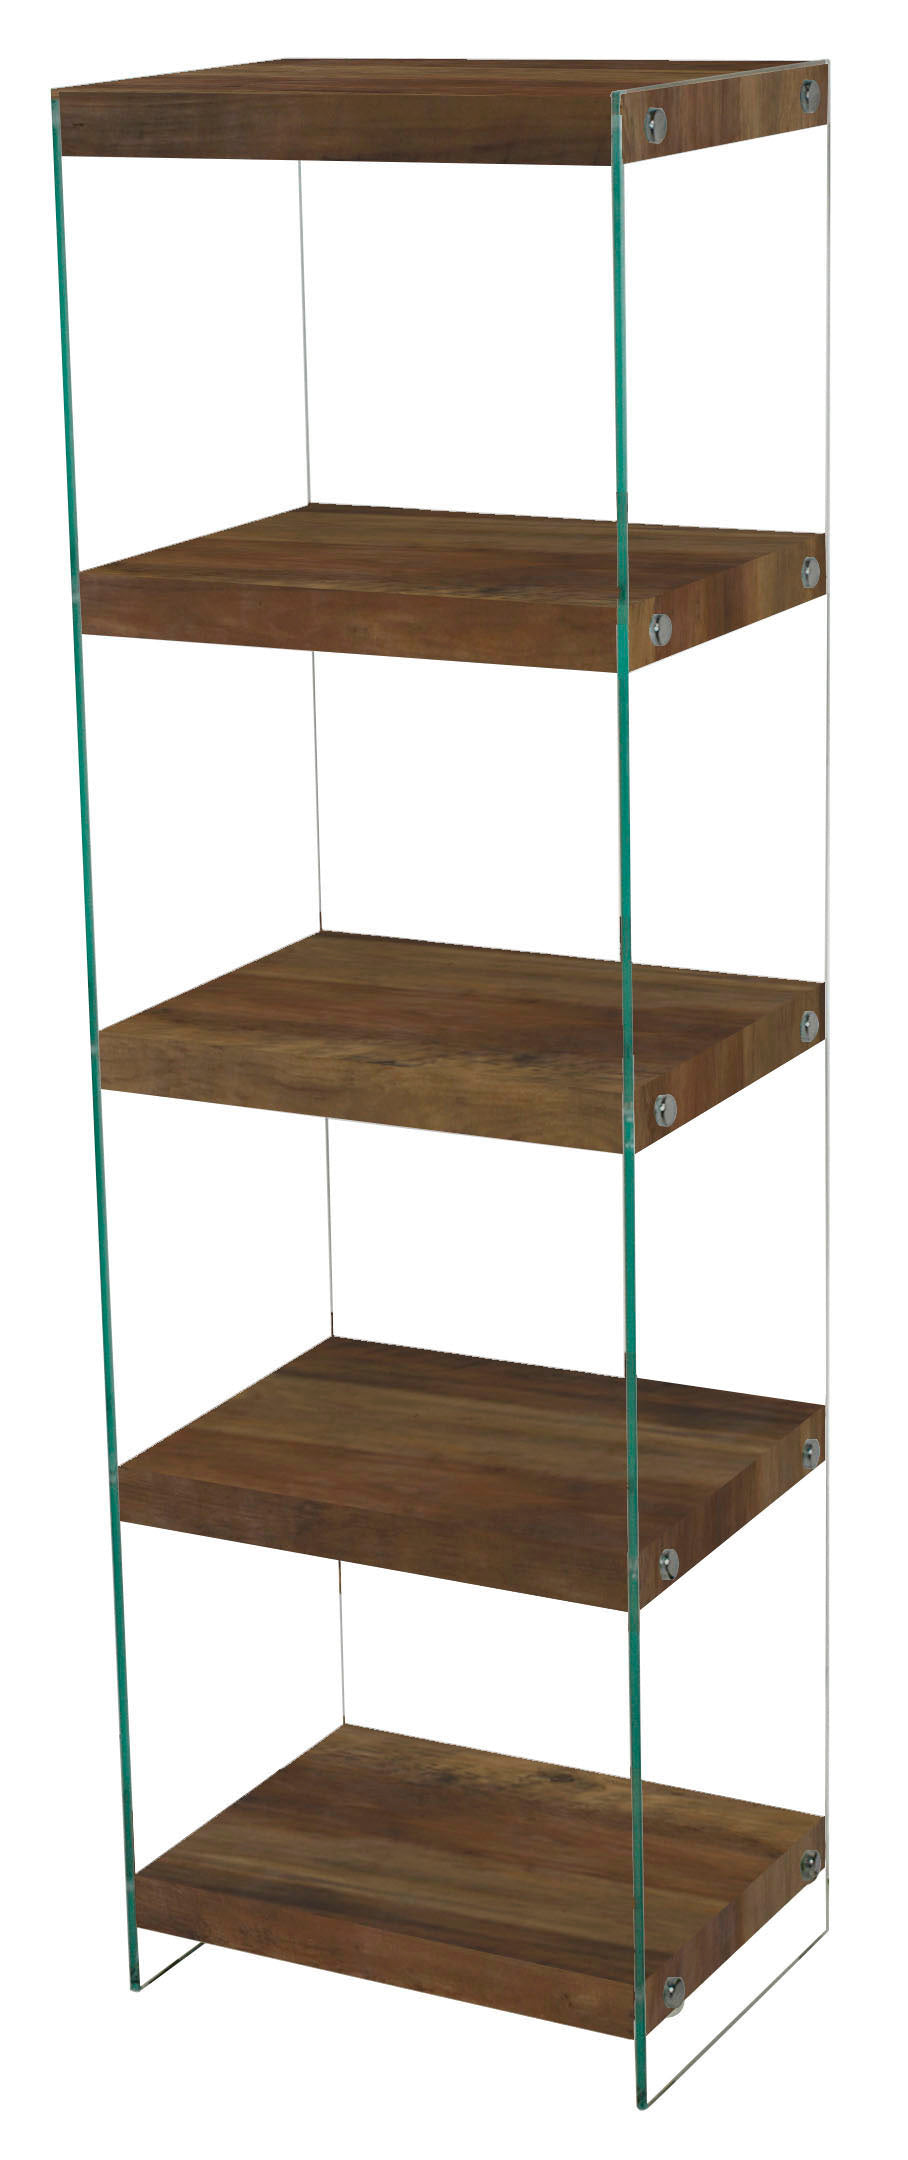 Charter Large Storage Unit Oak Effect & Glass Sides